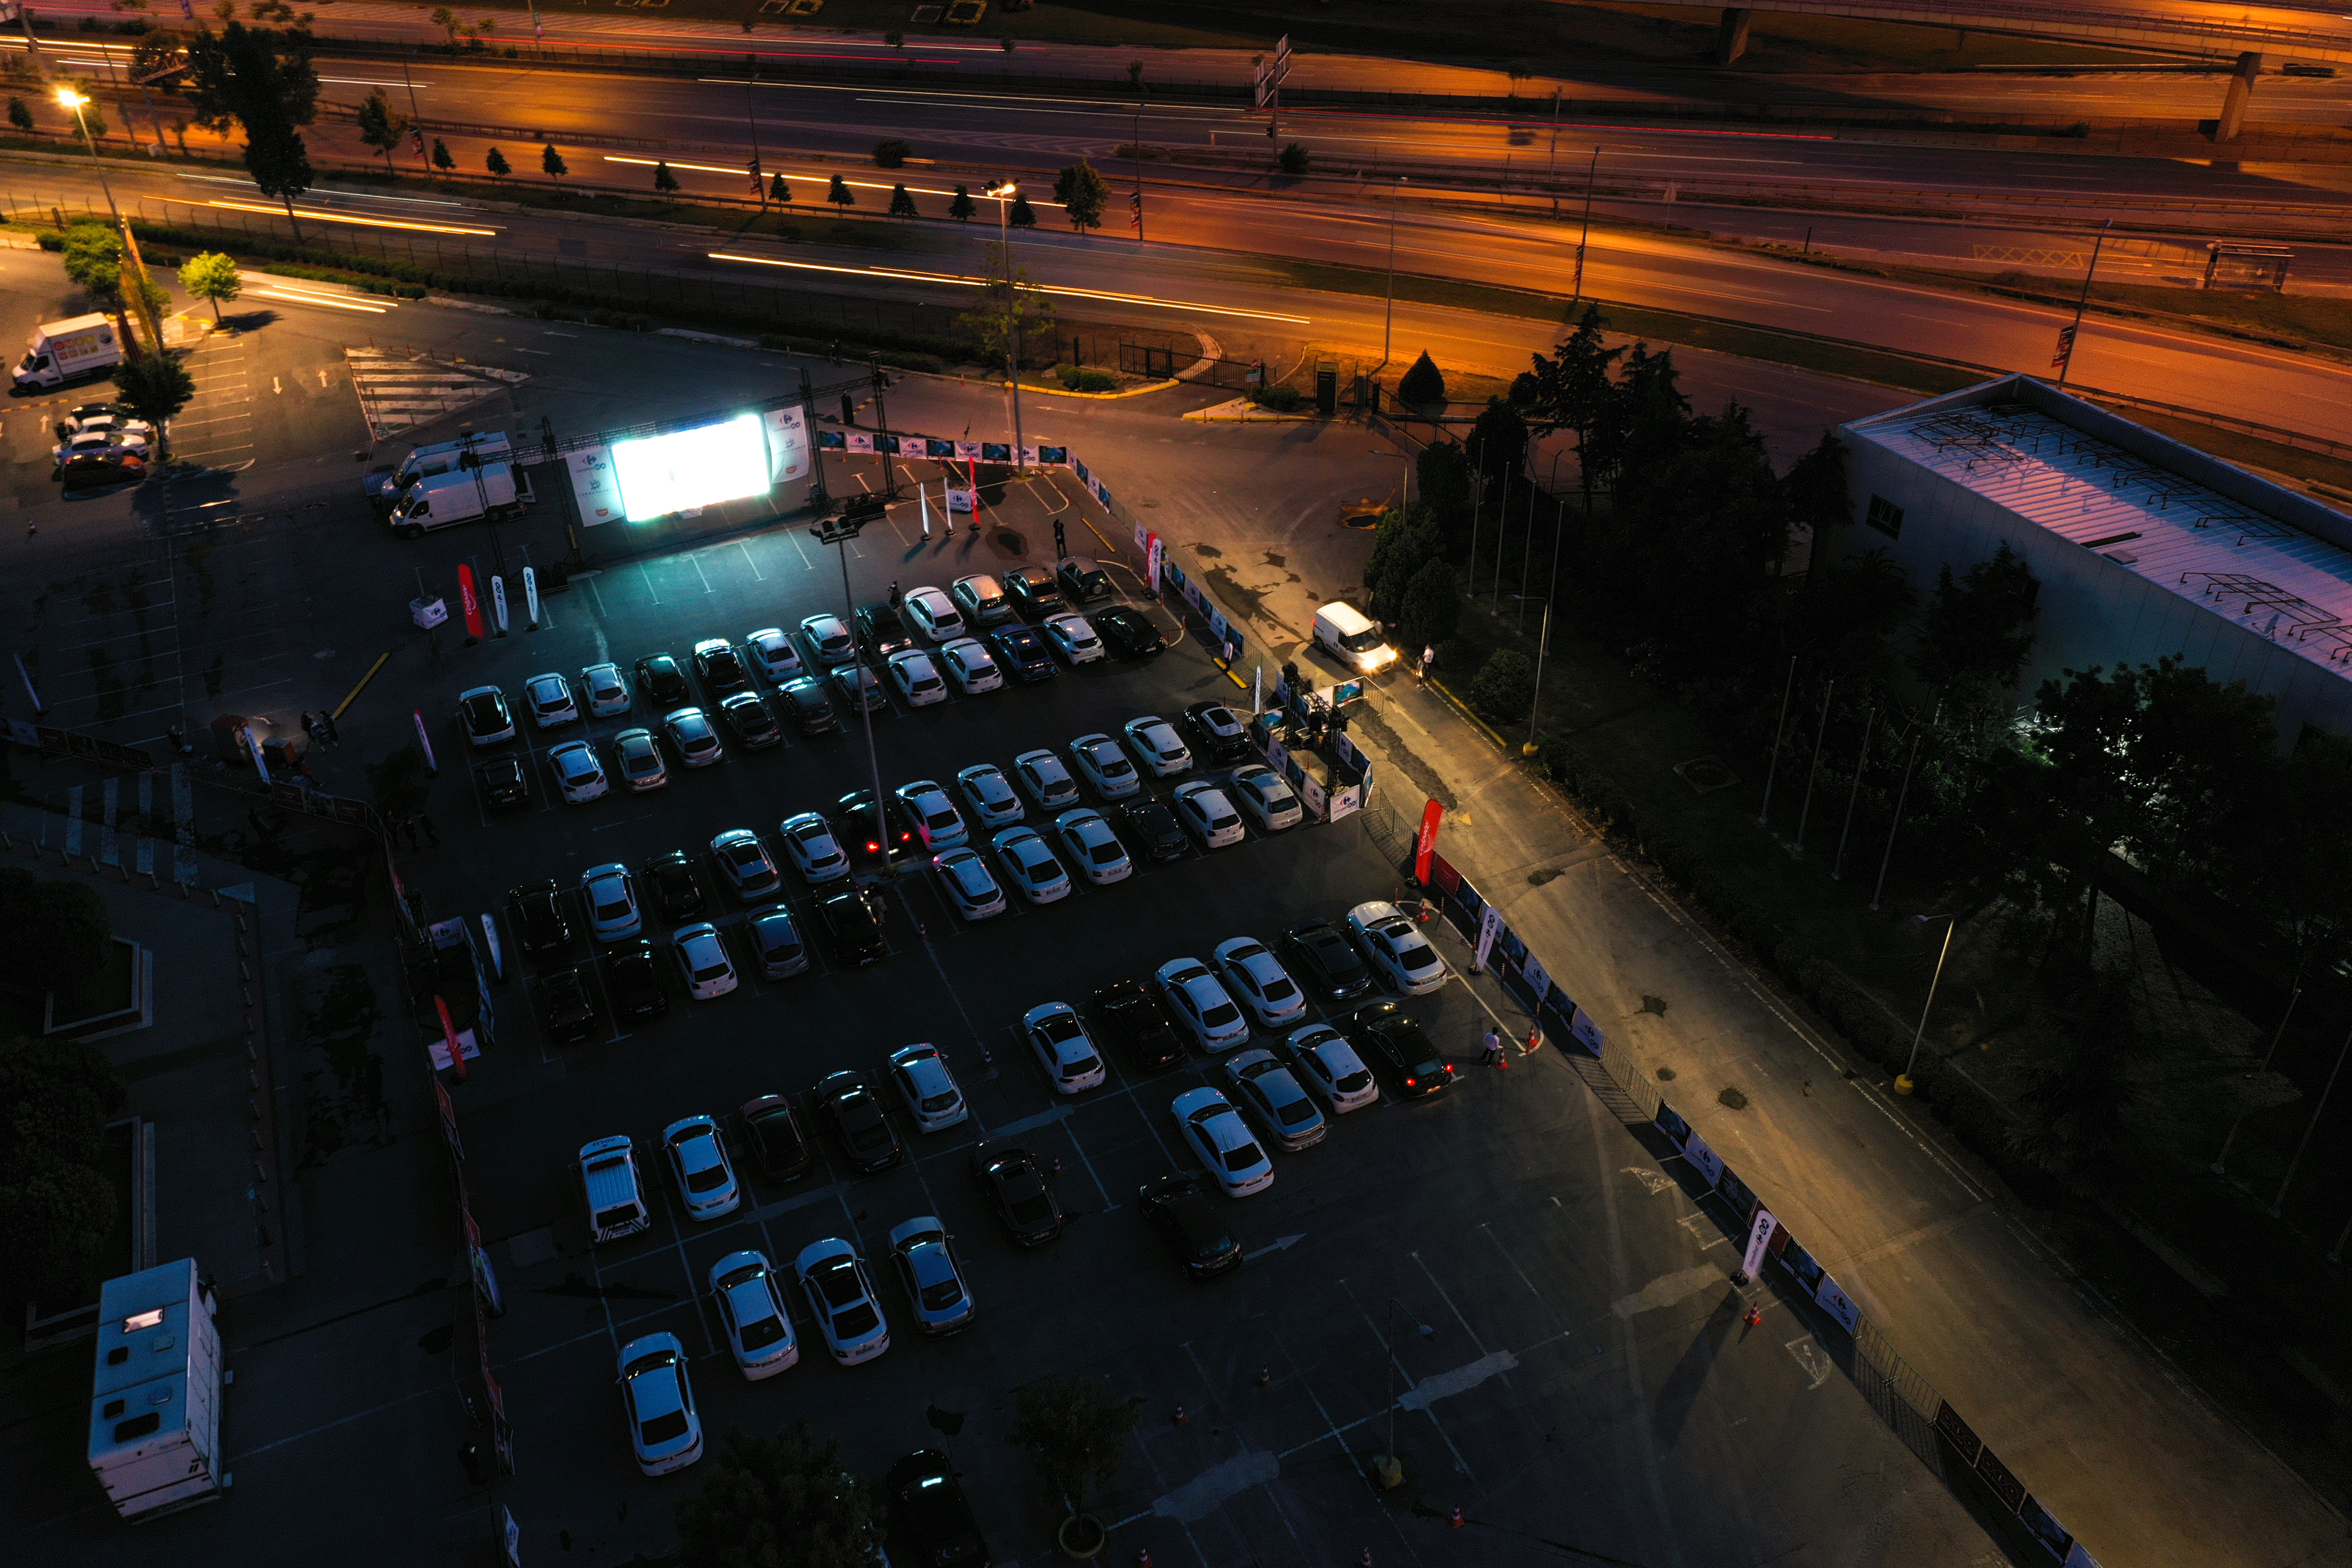 """ISTANBUL, TURKEY - MAY 28: An aerial view of cars during drive-in-theatre amid coronavirus (Covid-19) pandemic organized by CarrefourSA in Istanbul, Turkey on May 28, 2020. The Turkish movie """"Our Family"""" was screened on the theatre. (Photo by Muhammed Enes Yildirim/Anadolu Agency via Getty Images)"""